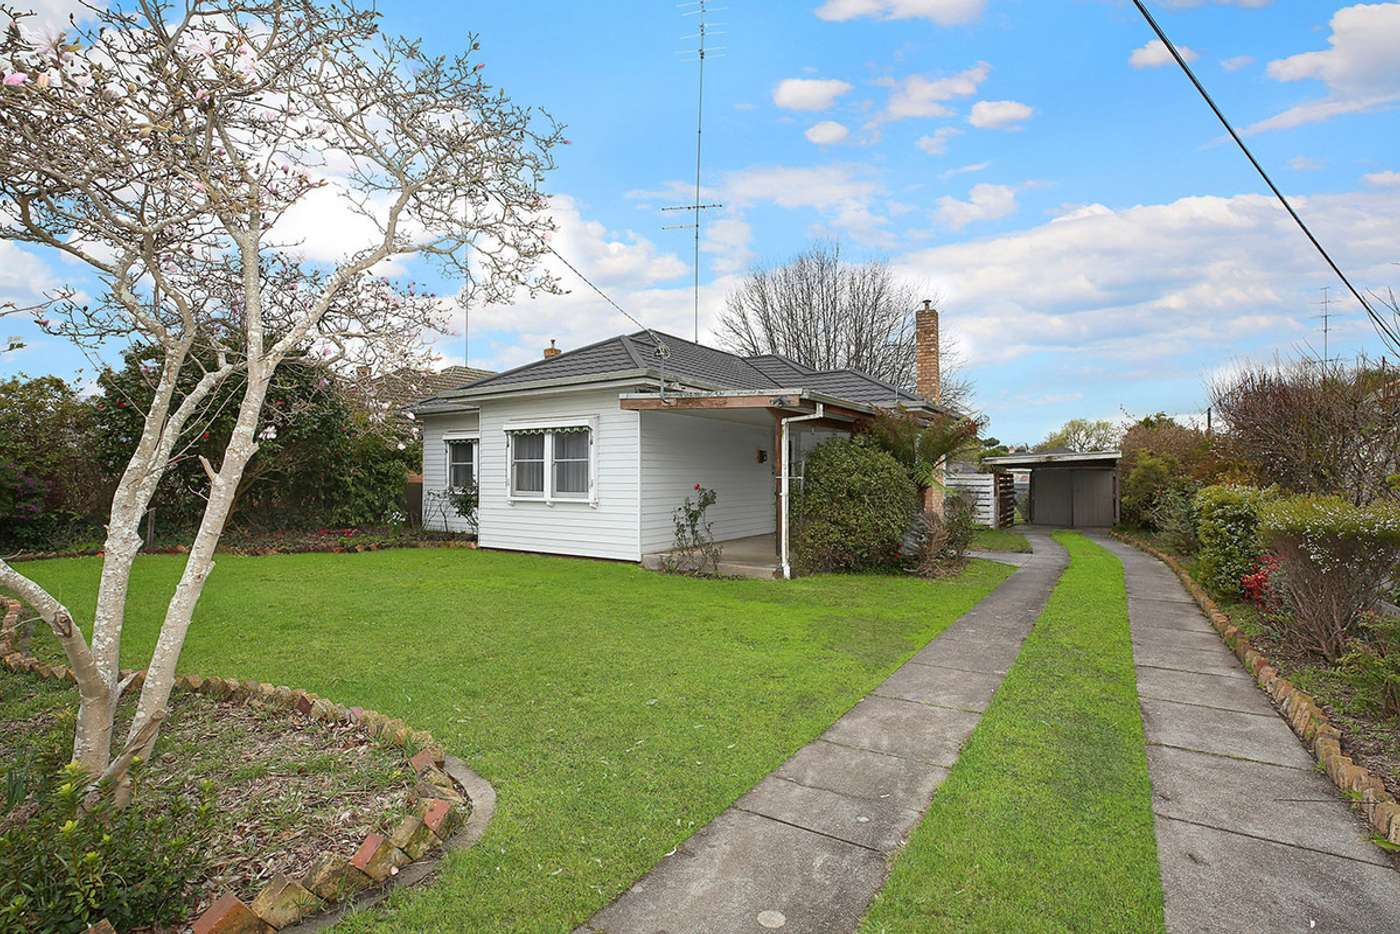 Main view of Homely house listing, 28 McDonald Street, Colac VIC 3250